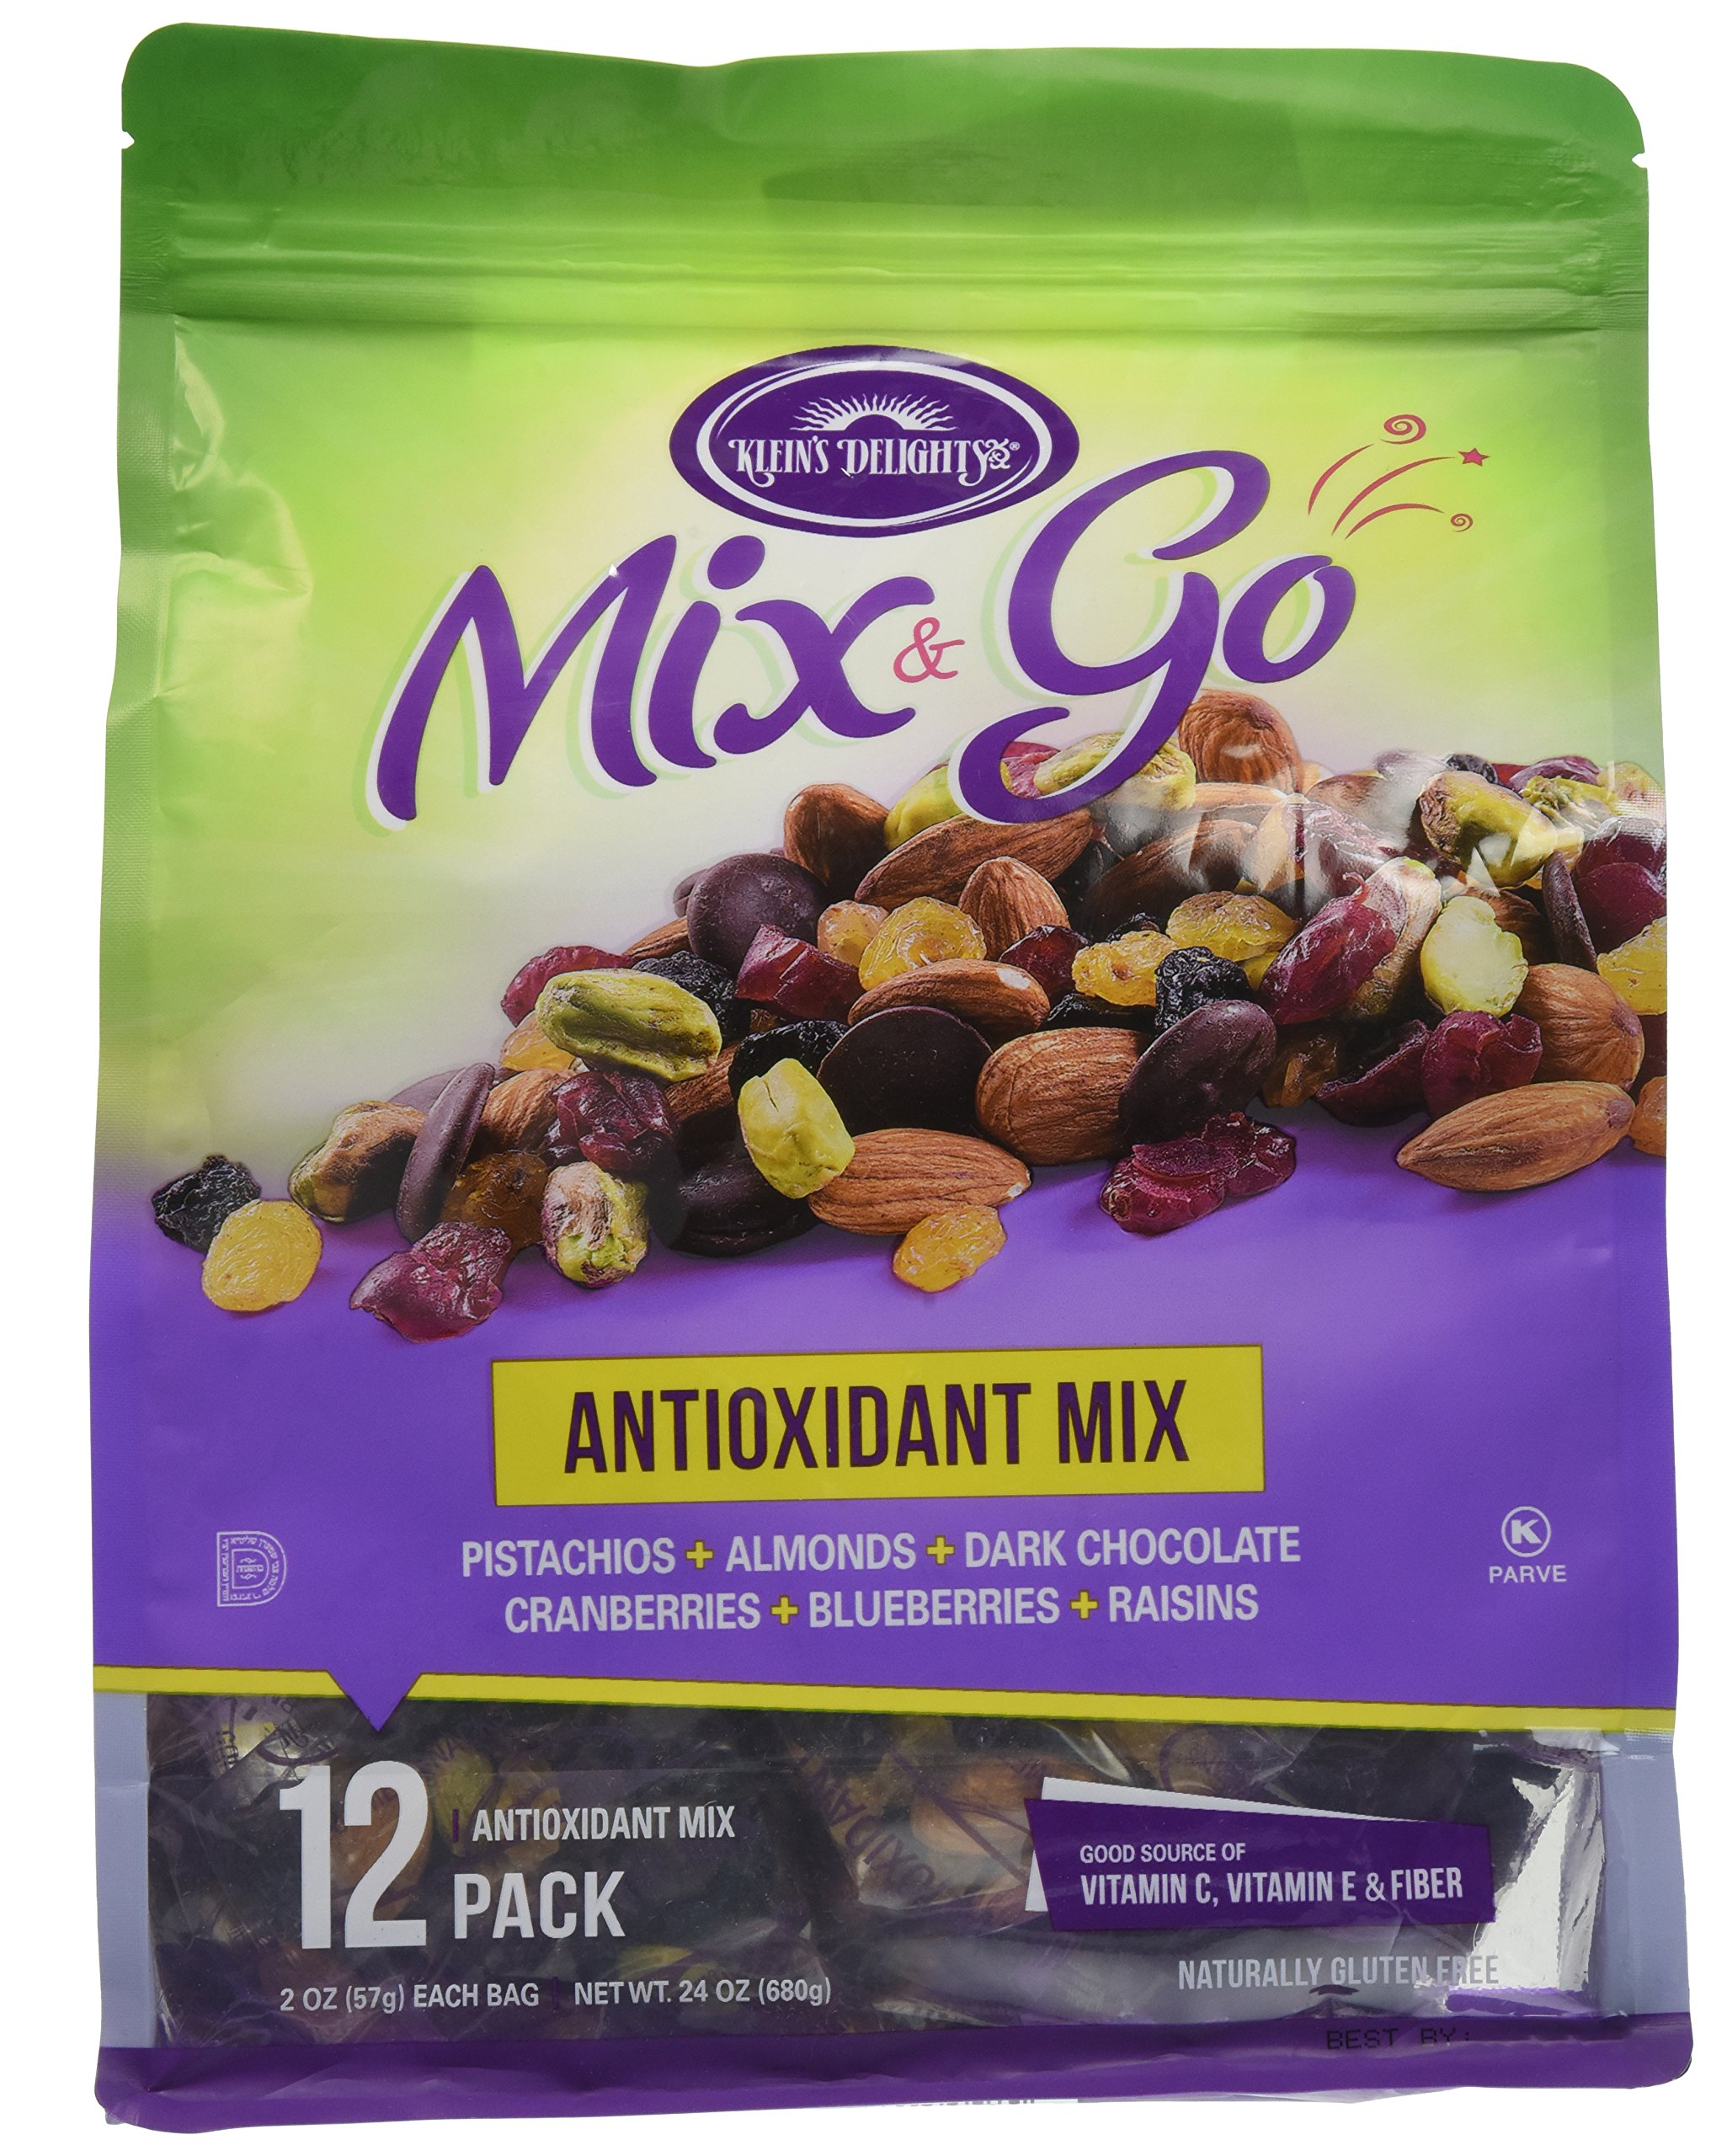 Mix & Go Antioxidant Nuts Mix 24 oz (contains 12 packs of 2 oz. bags)